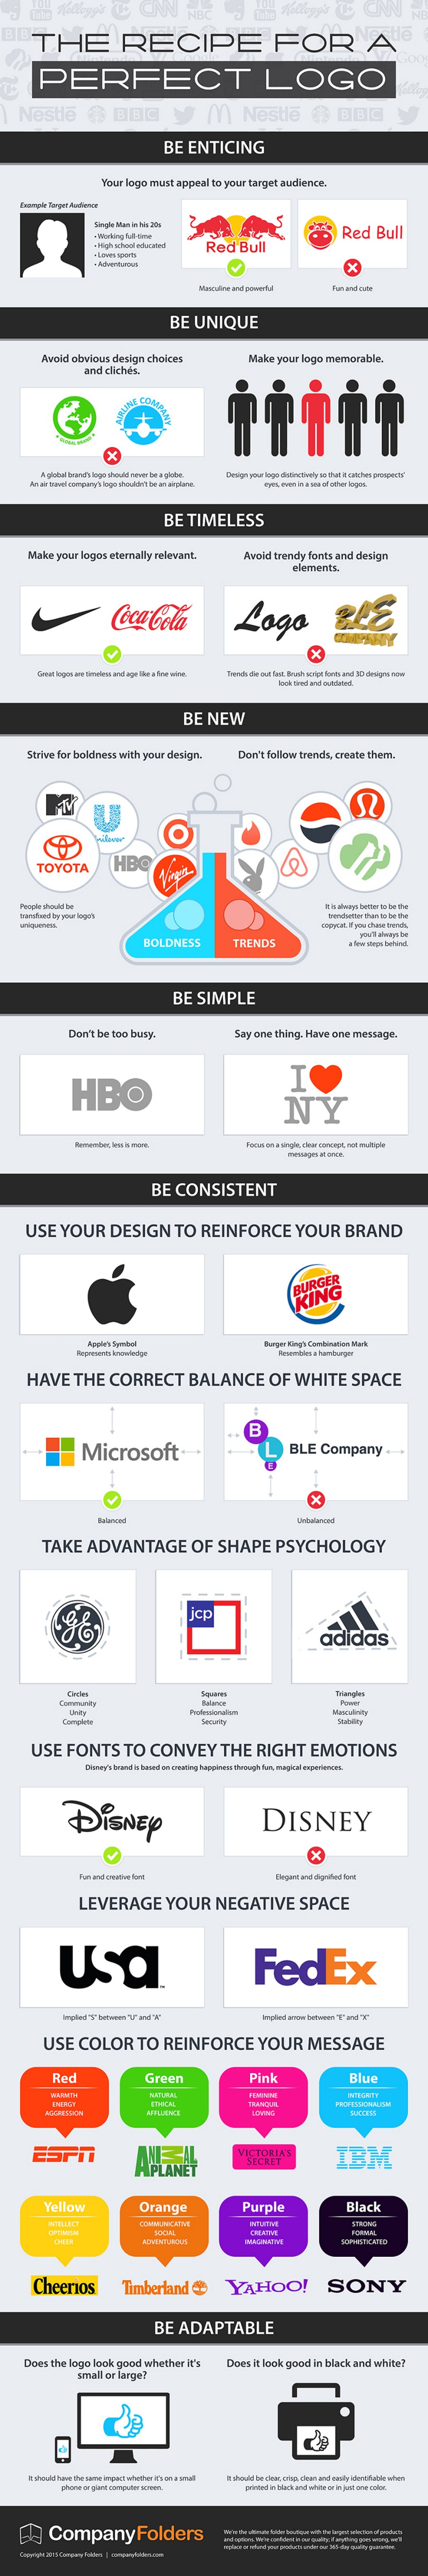 Design In The Martech Digest Schematic Symbols Ux And Cx Pinterest Recipe For A Perfect Logo Web Kit